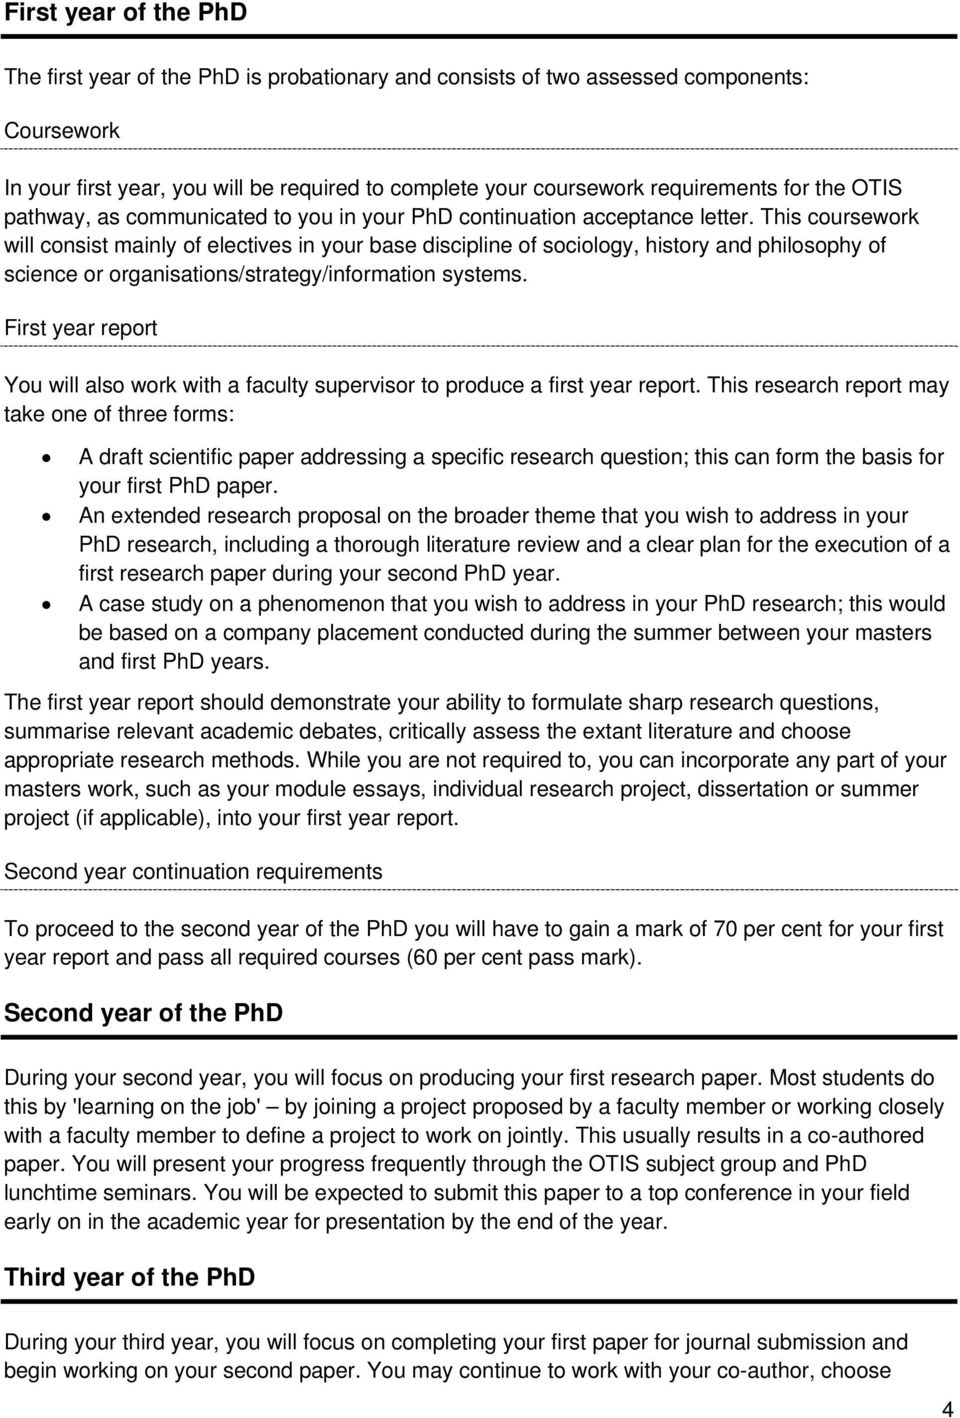 This coursework will consist mainly of electives in your base discipline of sociology, history and philosophy of science or organisations/strategy/information systems.